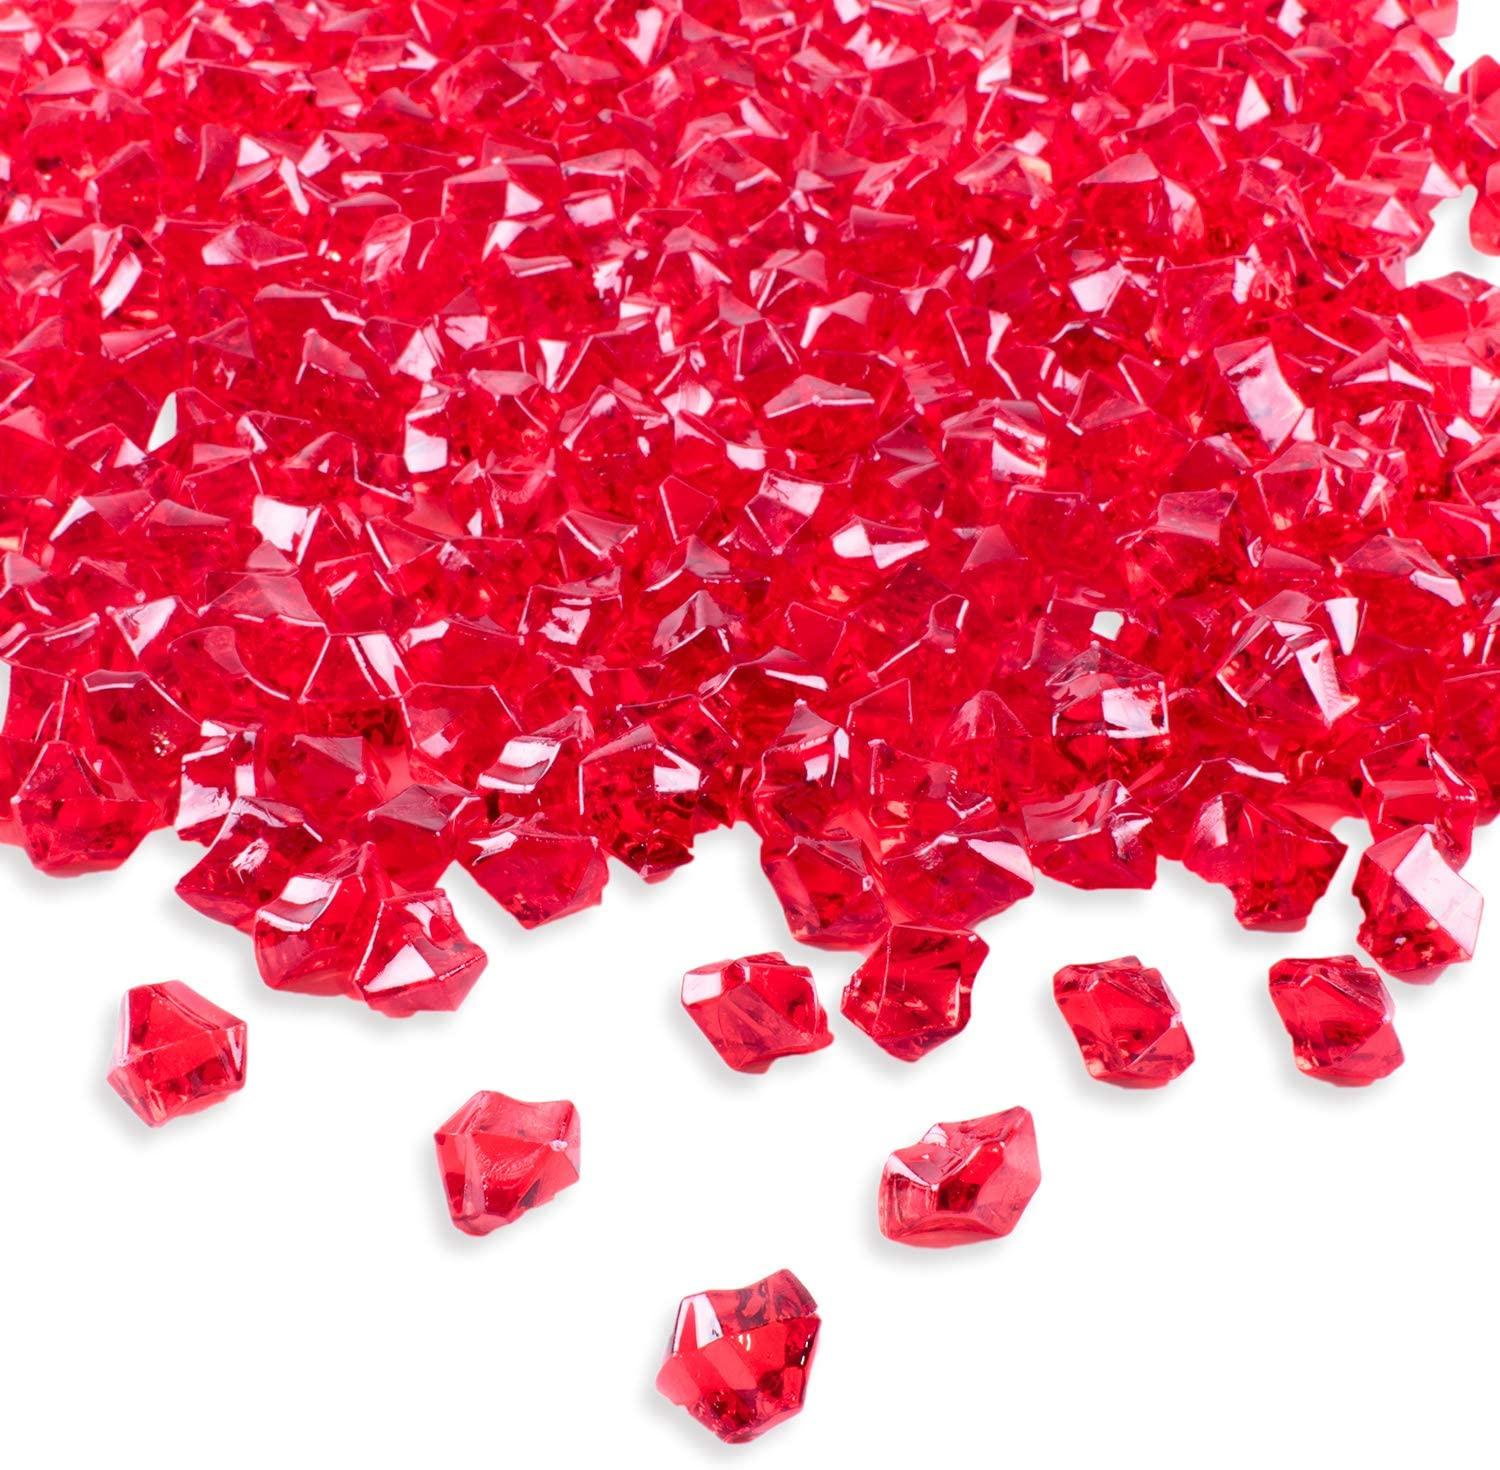 "Super Z Outlet 120 Pack Acrylic Color Ice Rock Crystals Treasure Gems for Table Scatters, Home Vase Fillers, Event, Wedding, Arts & Crafts, Birthday Decoration Favor (1"" Inch) (Red)"